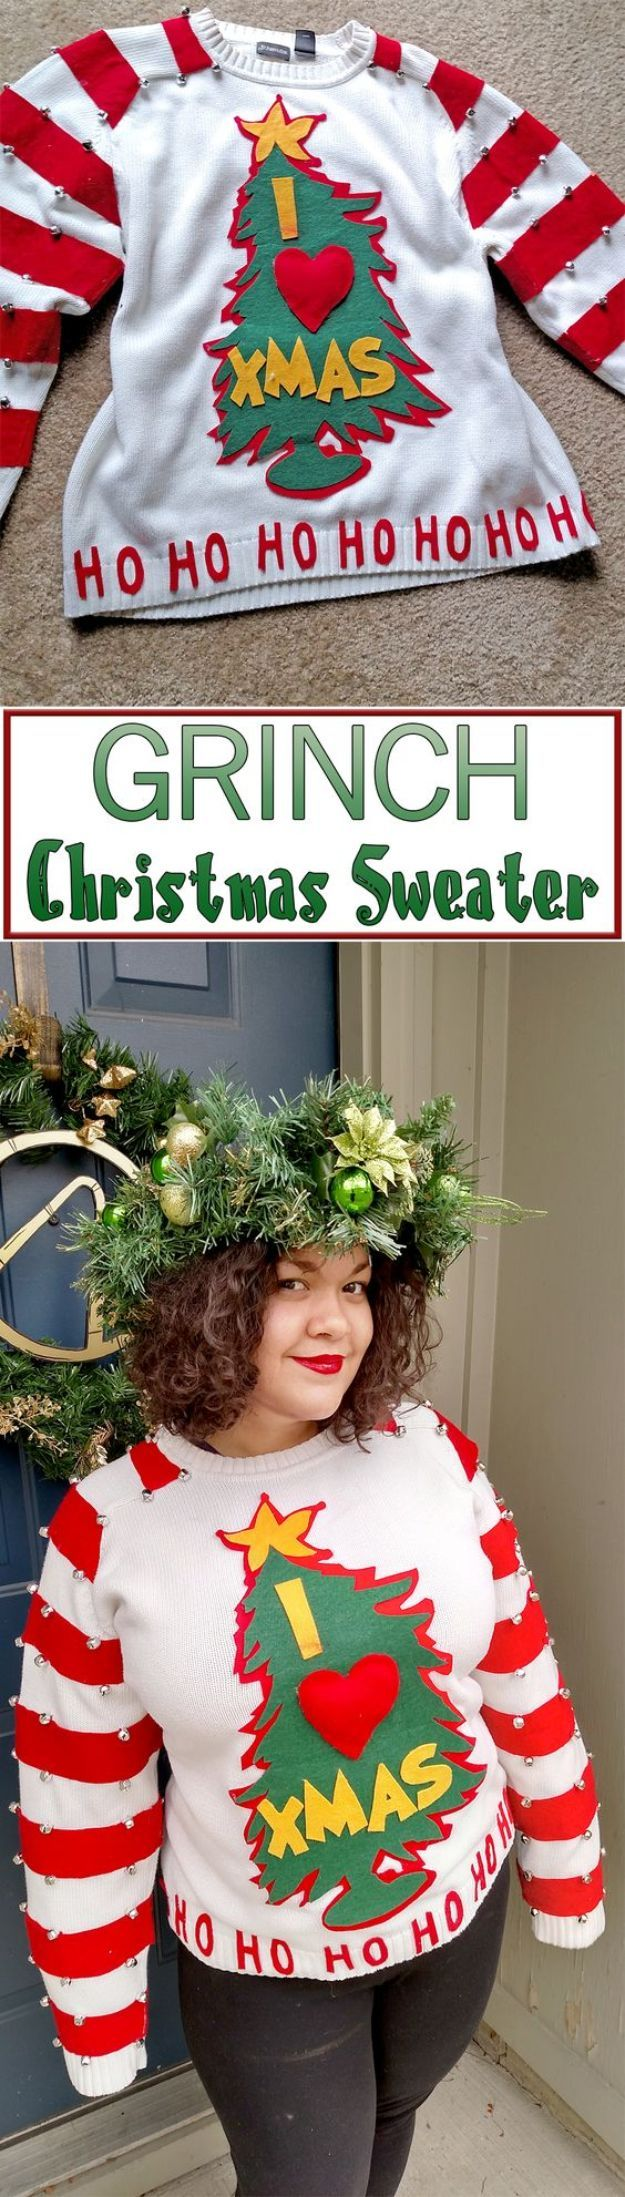 DIY Ugly Christmas Sweaters – Easy DIY Grinch Sweater – No Sew and Easy Sewing Projects – Ideas for Him and Her to Wear to Holiday Contest or Office Party Outfit – Funny Couples Sweater, Mens Womens and Kids